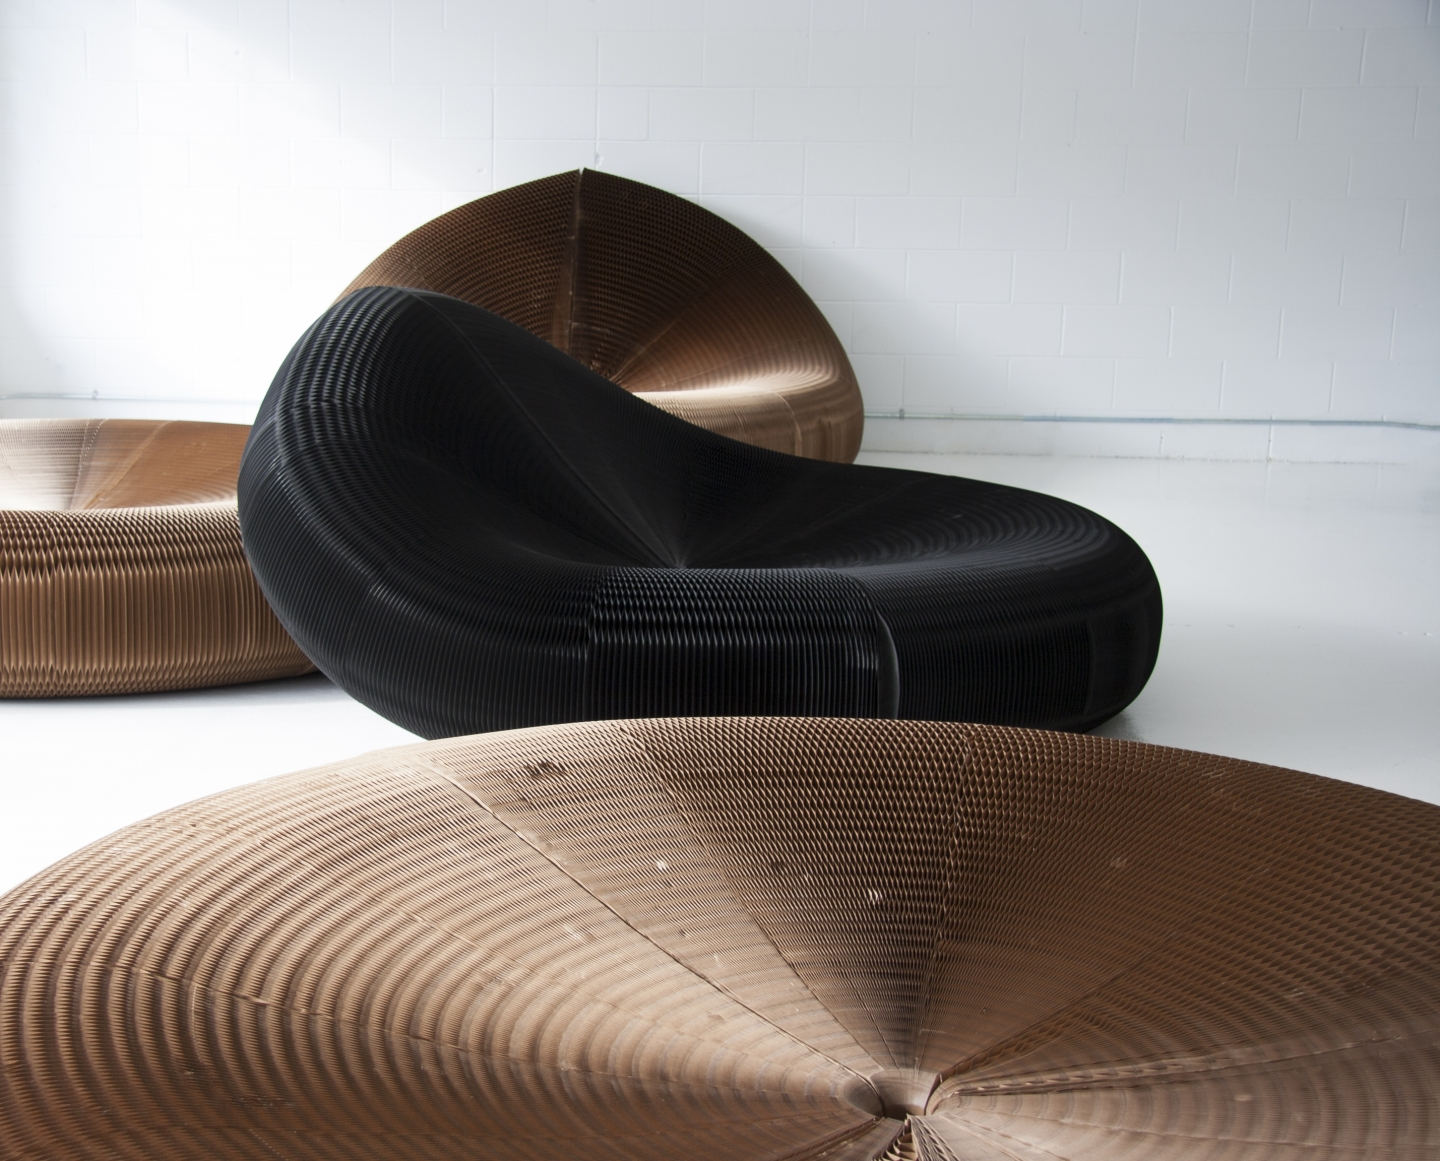 a black paper softseating lounger leans against another to create a contoured backrest.